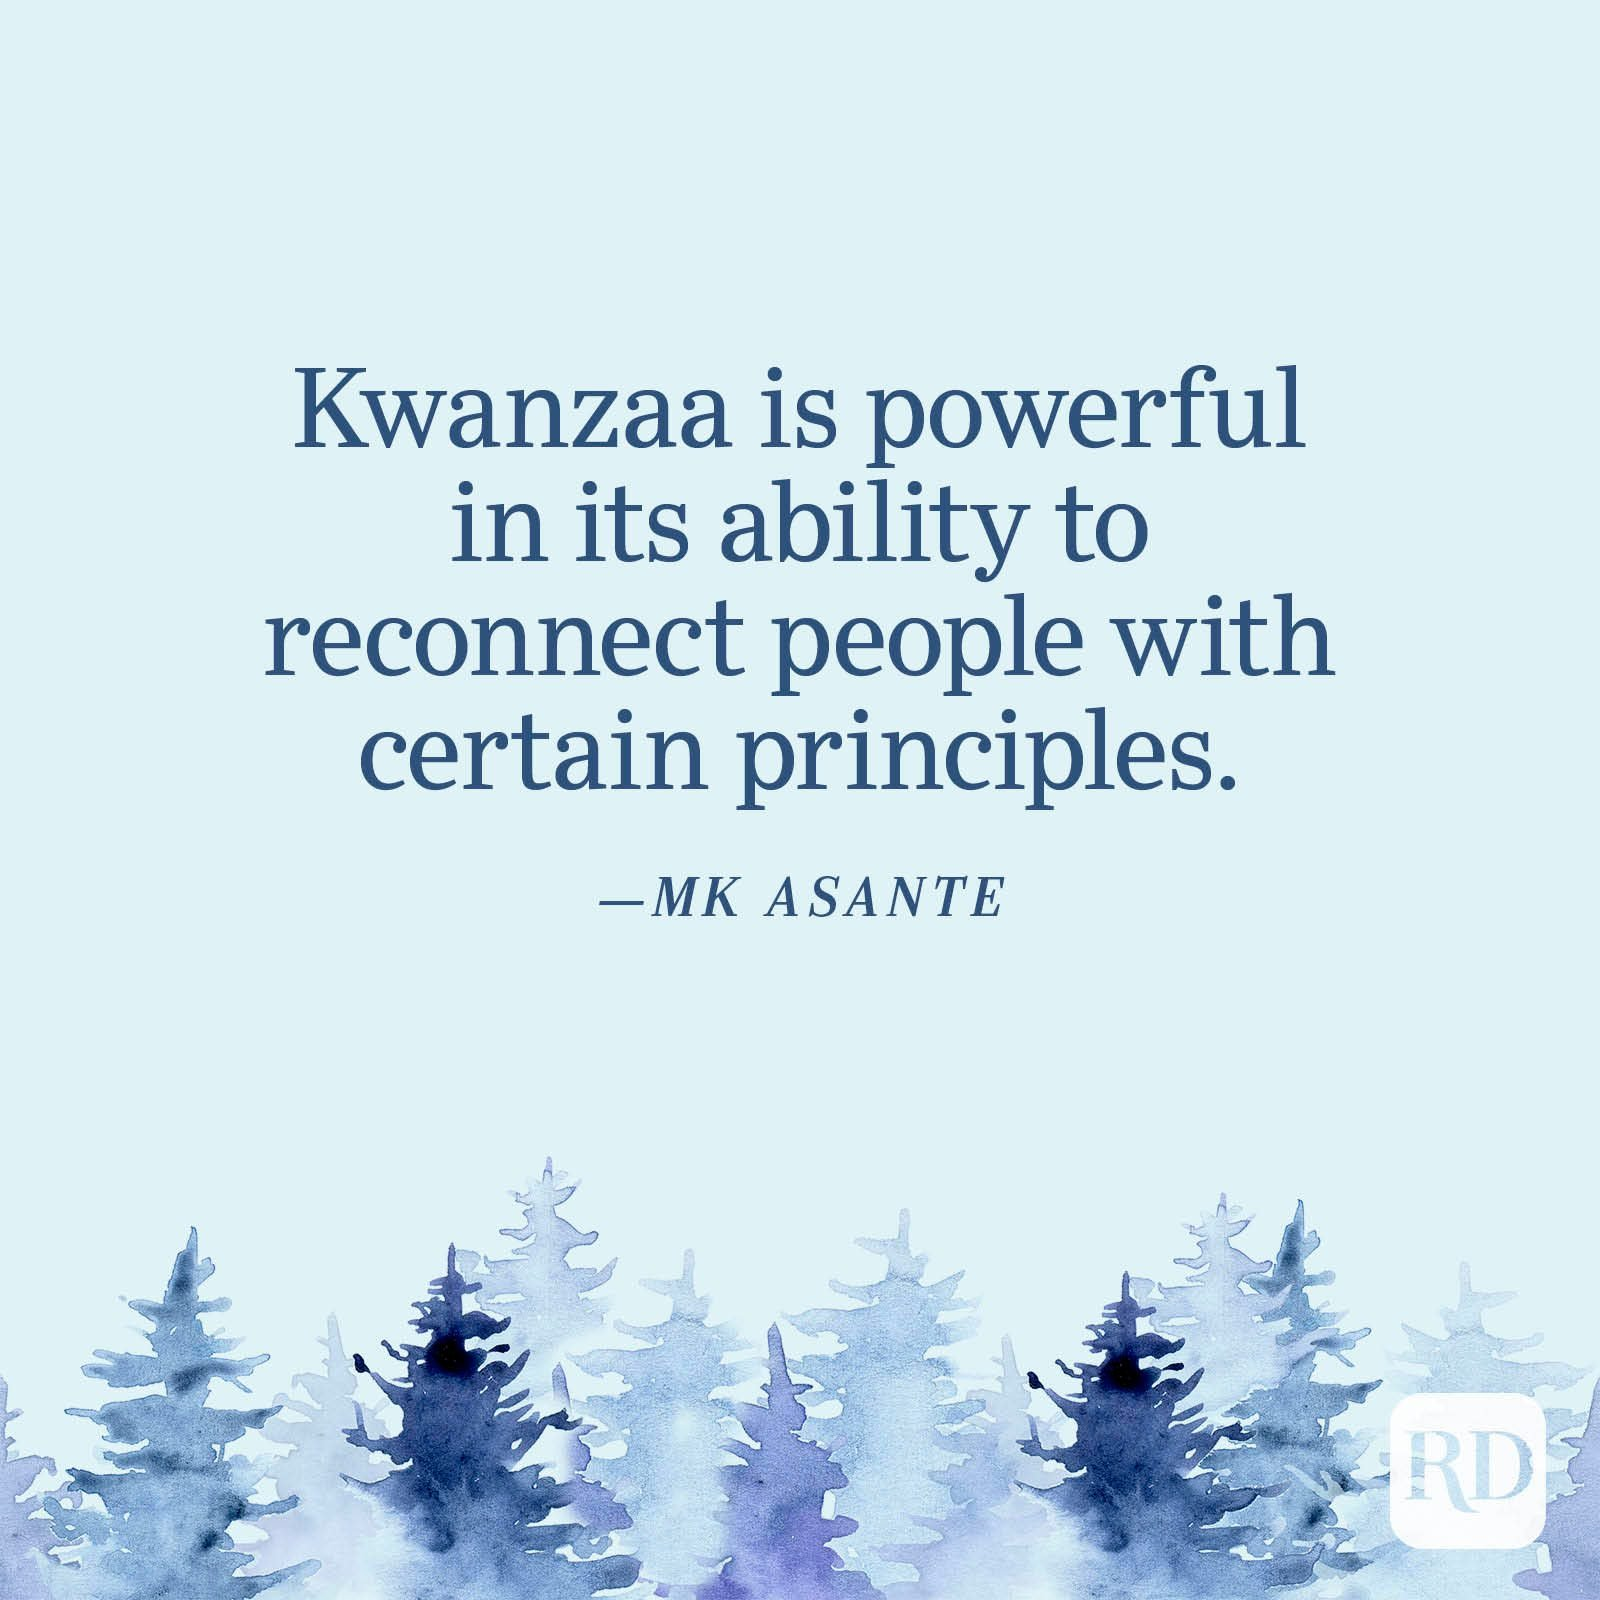 """""""Kwanzaa is powerful in its ability to reconnect people with certain principles."""" —MK Asante"""